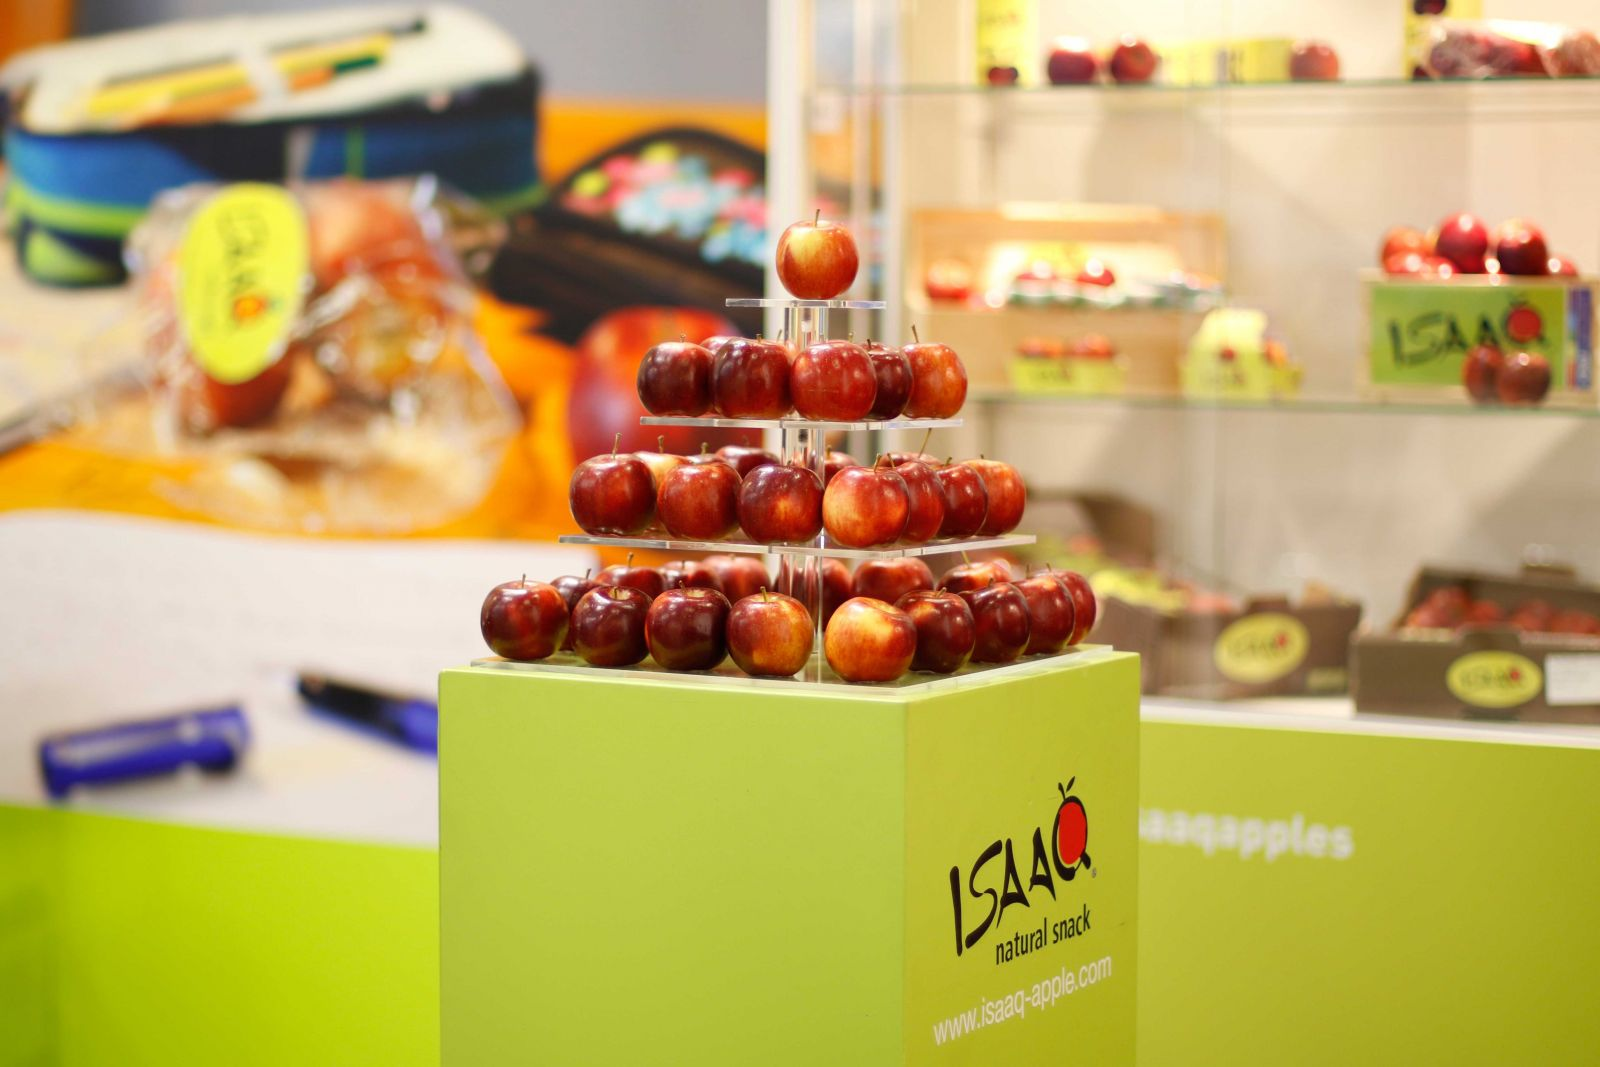 ISAAQ apples display